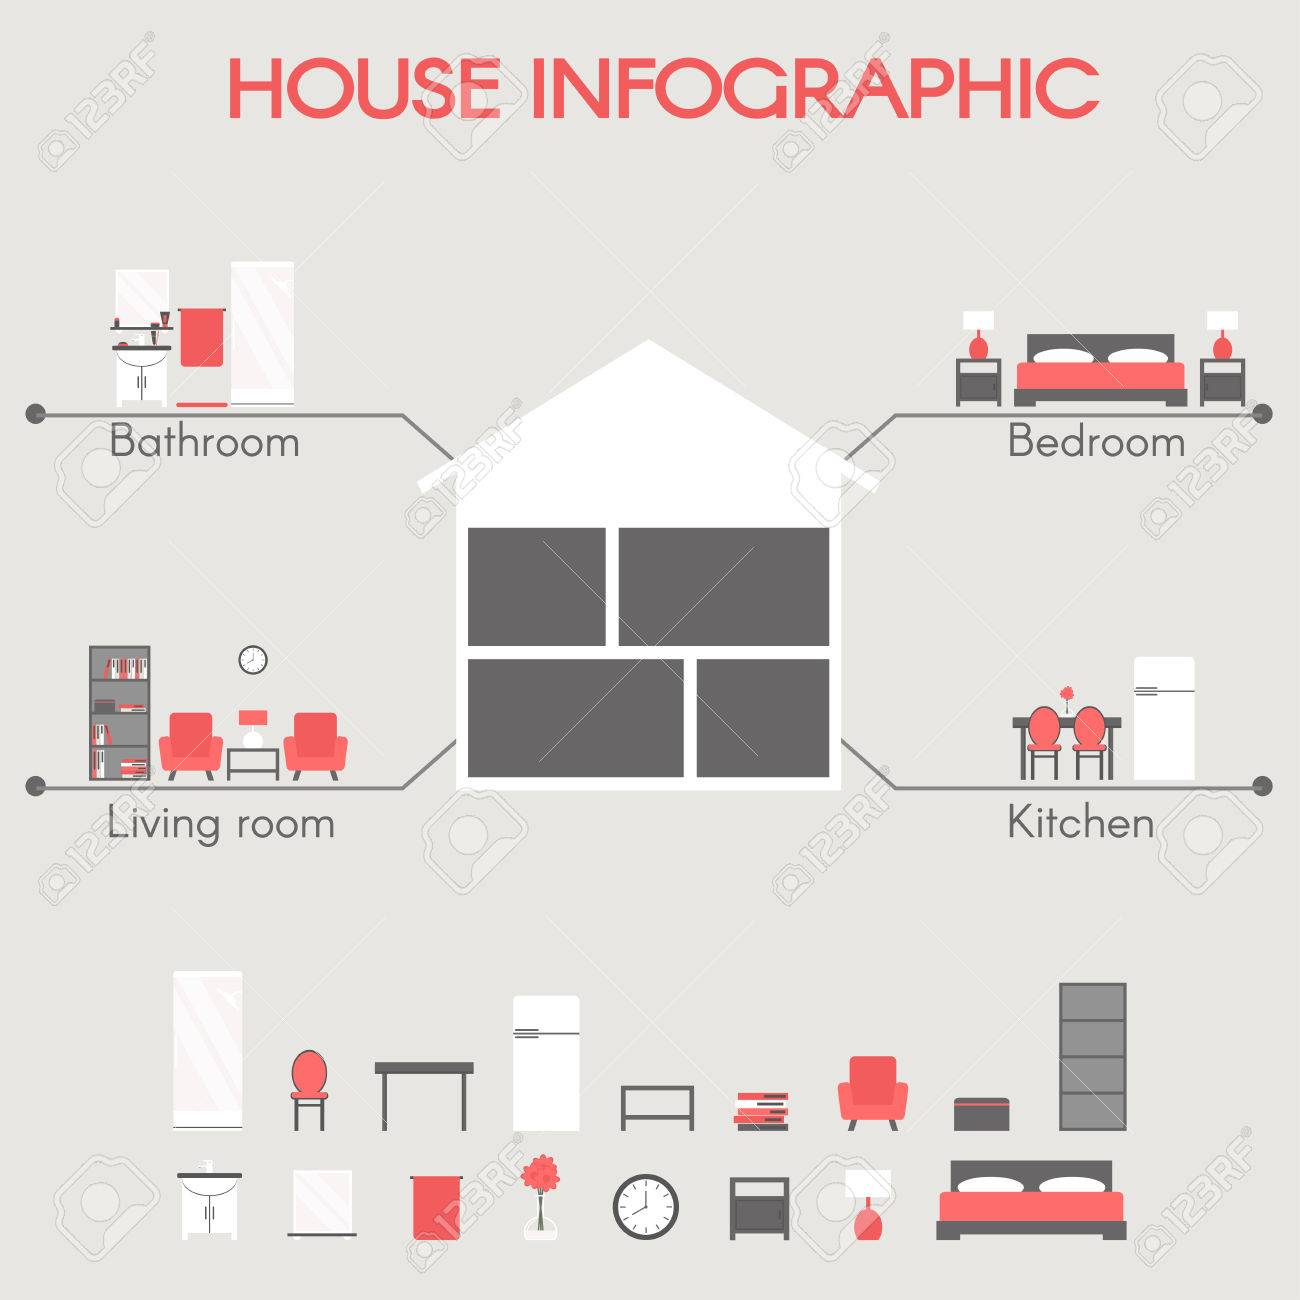 House infographic modern house rooms concept with bedroom bathroom house infographic modern house rooms concept with bedroom bathroom living room and kitchen ccuart Choice Image